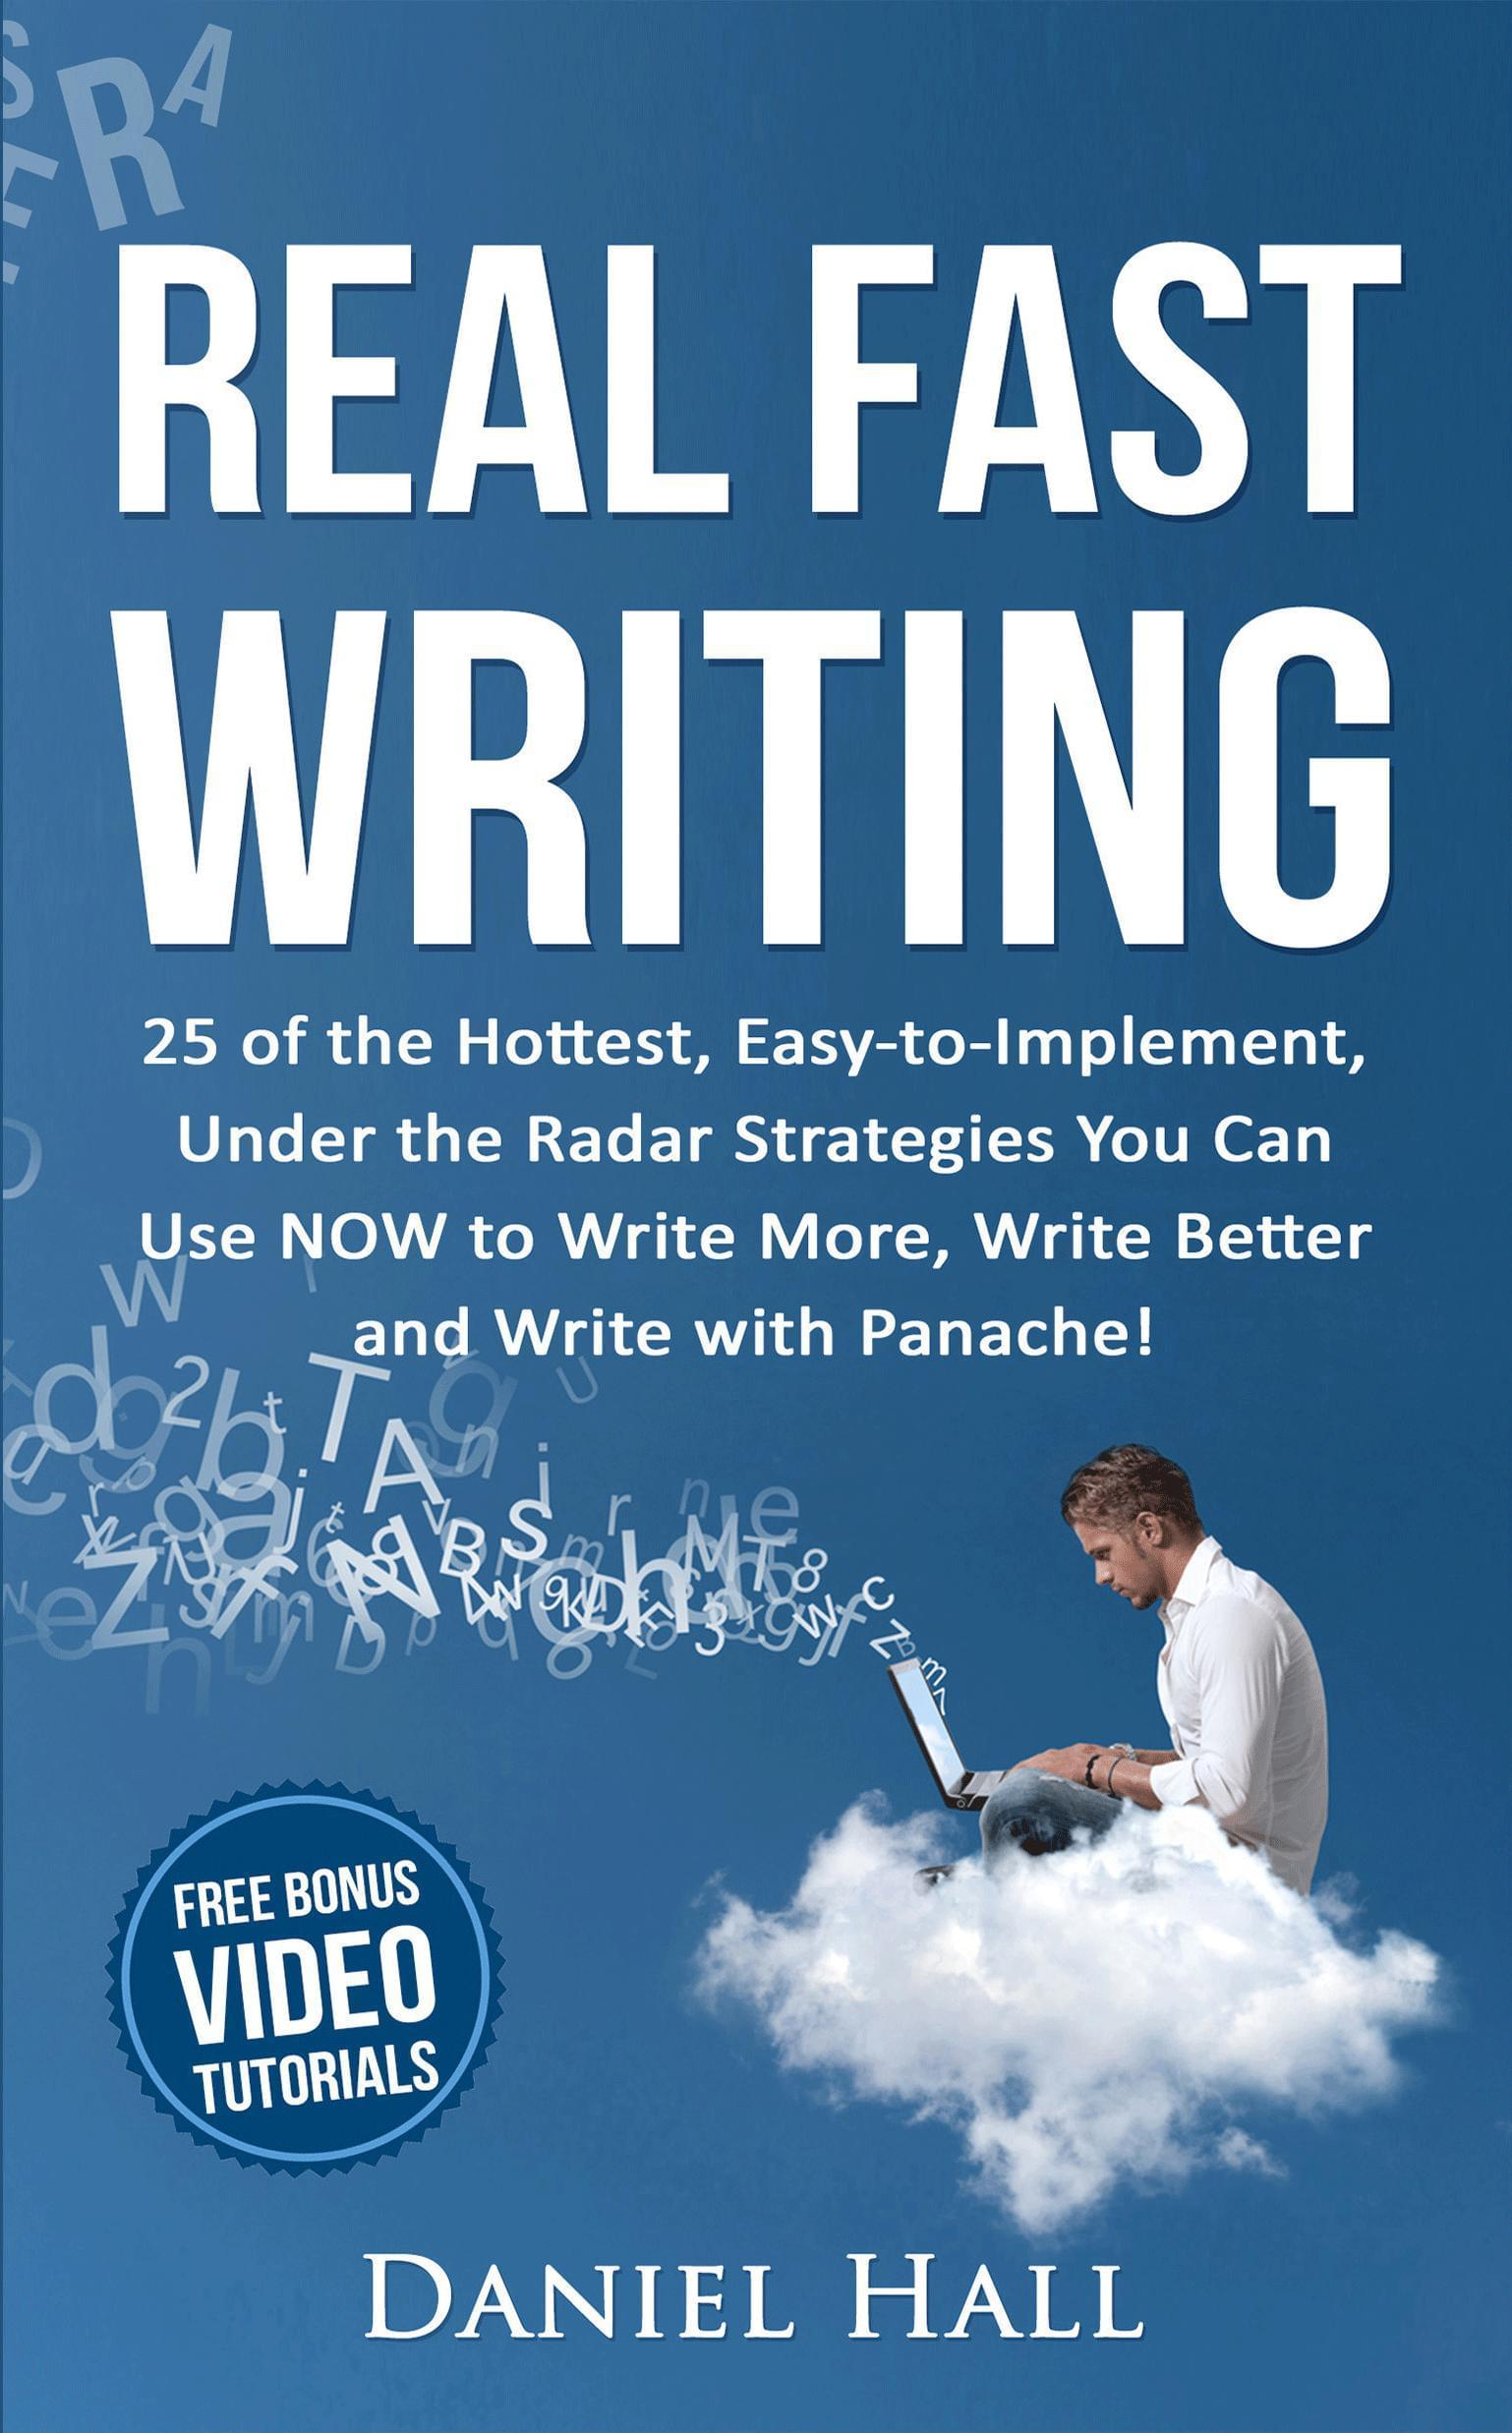 Real Fast Writing by Daneil Hall